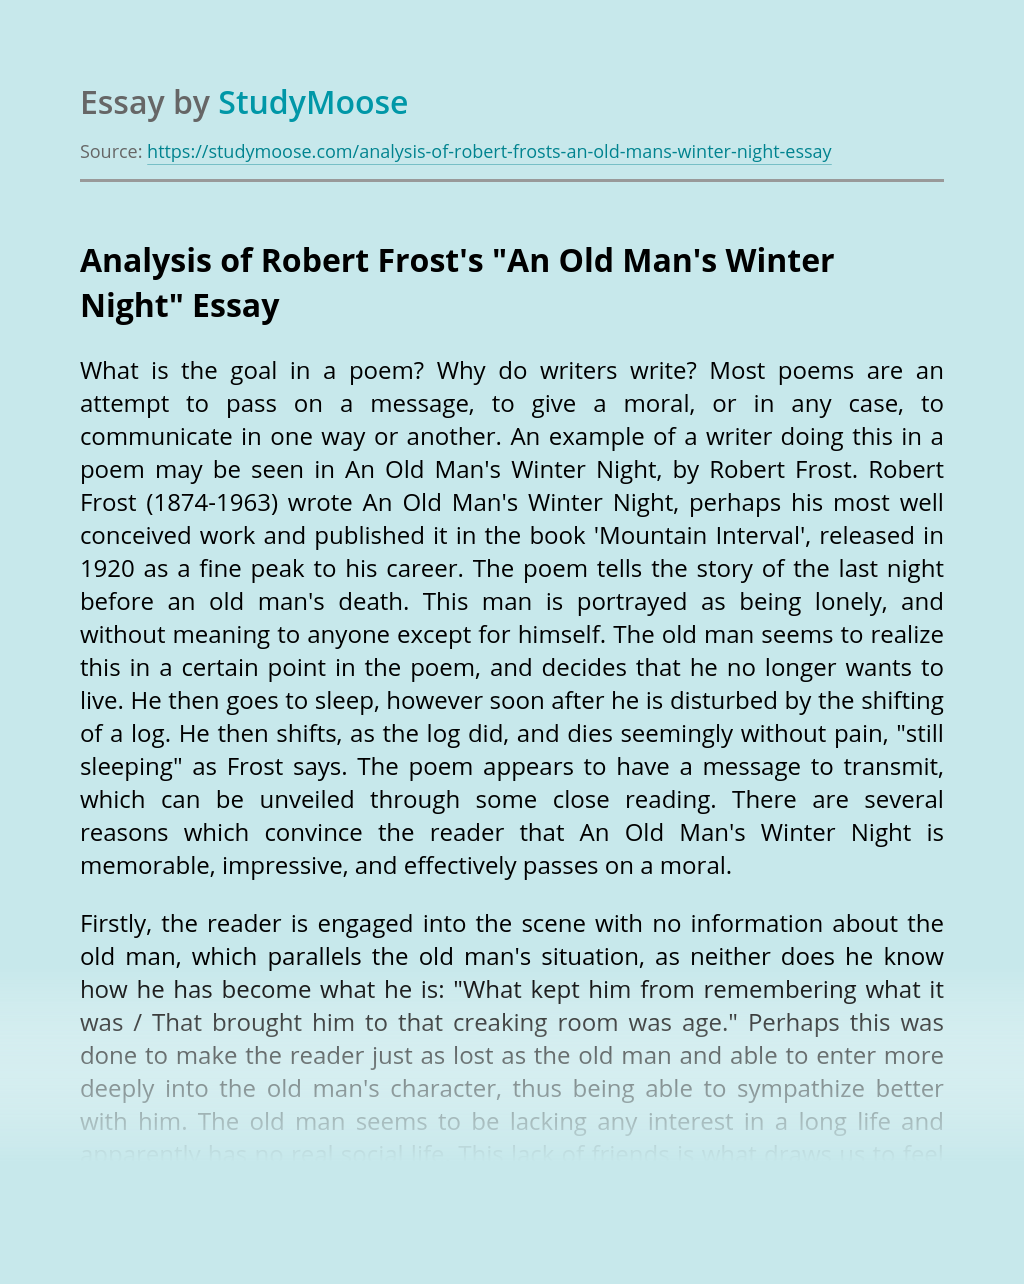 """Analysis of Robert Frost's """"An Old Man's Winter Night"""""""